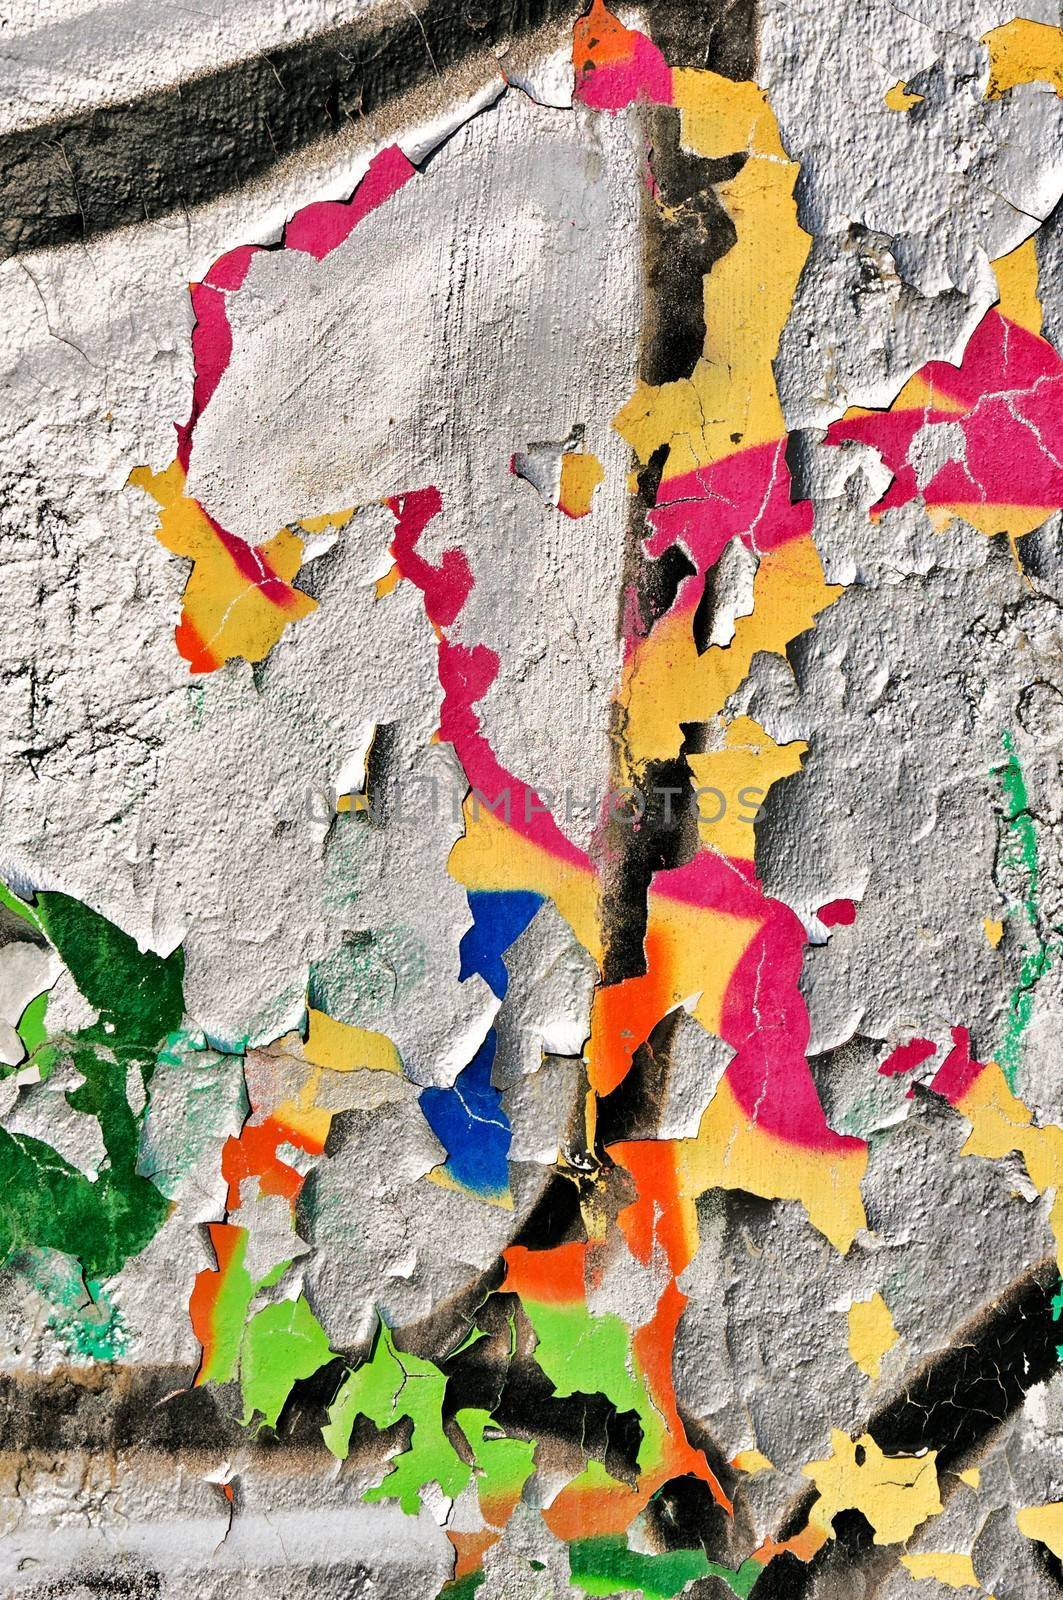 Abstract colors on the wall